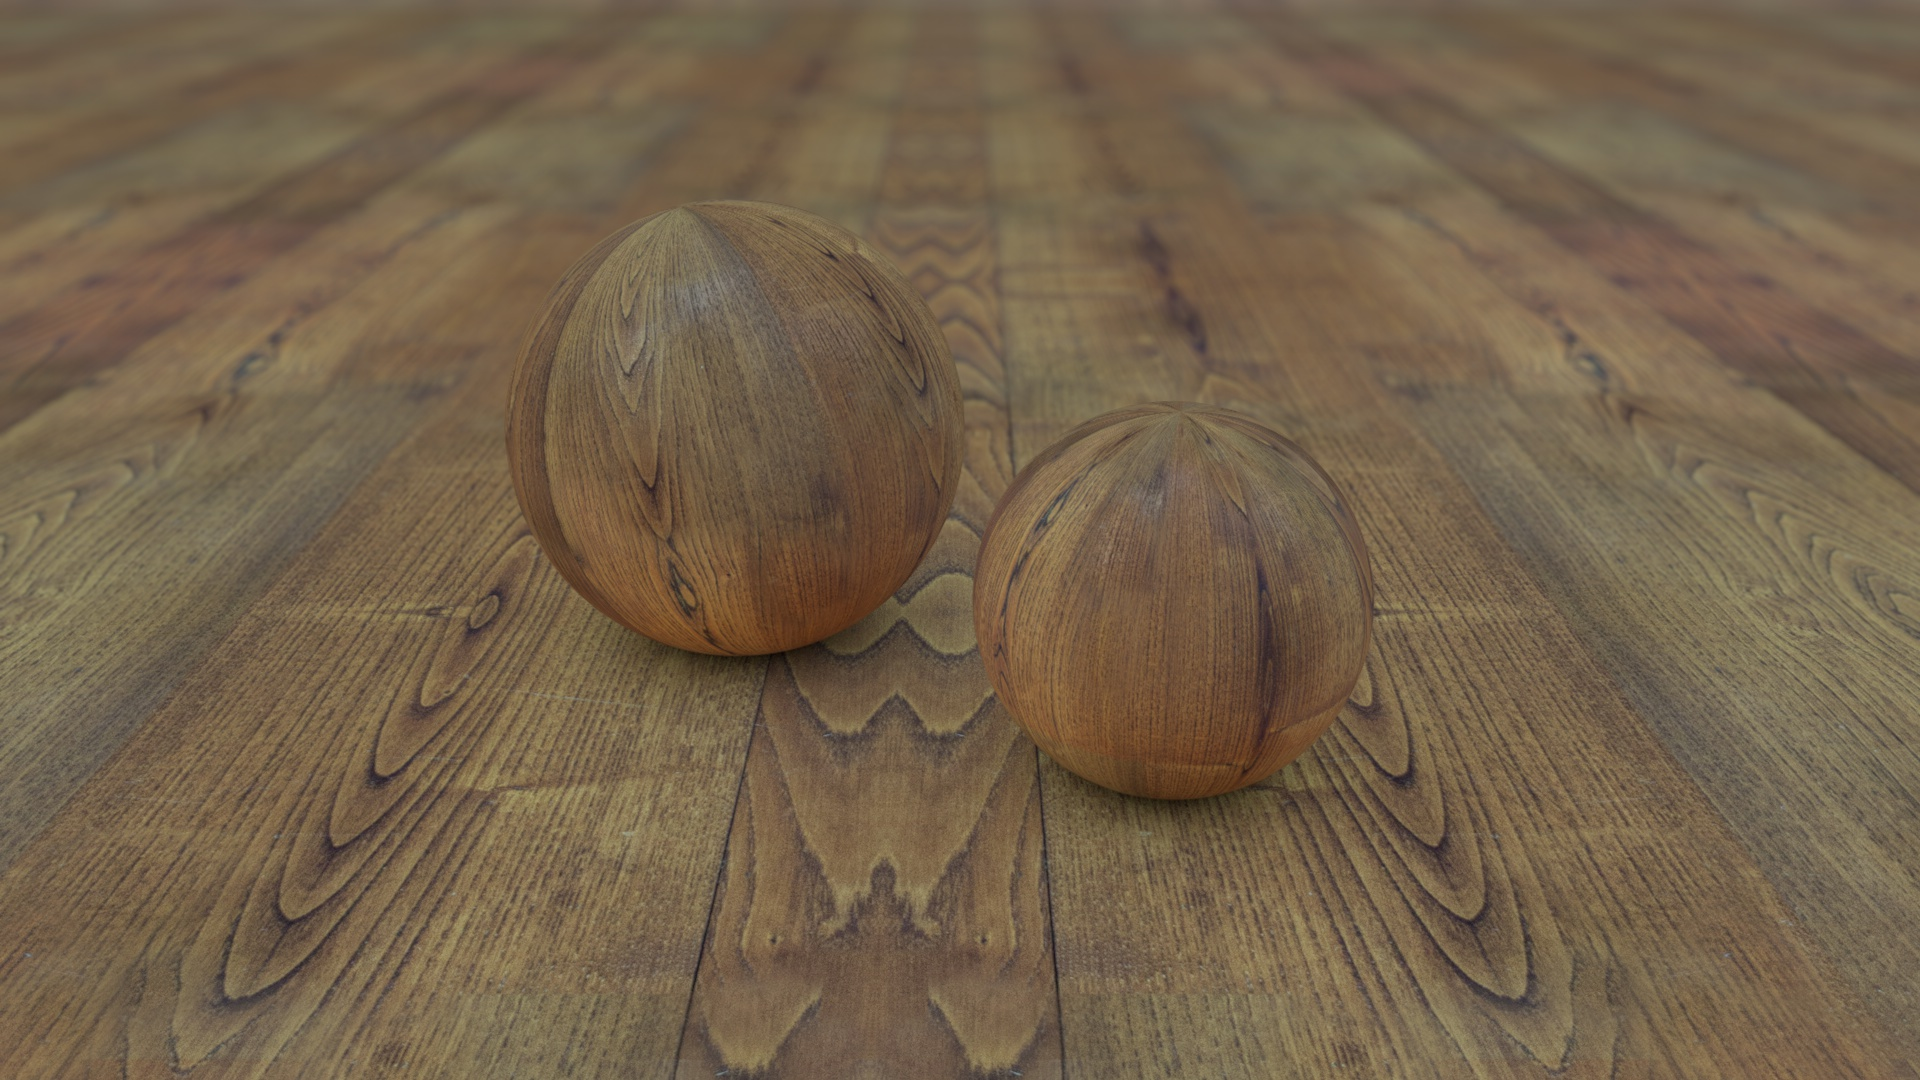 23 seamless wood textures for cinema4d by 3dtreatment 3docean floorwood 3 monestry door 3dtreatmentg altavistaventures Choice Image